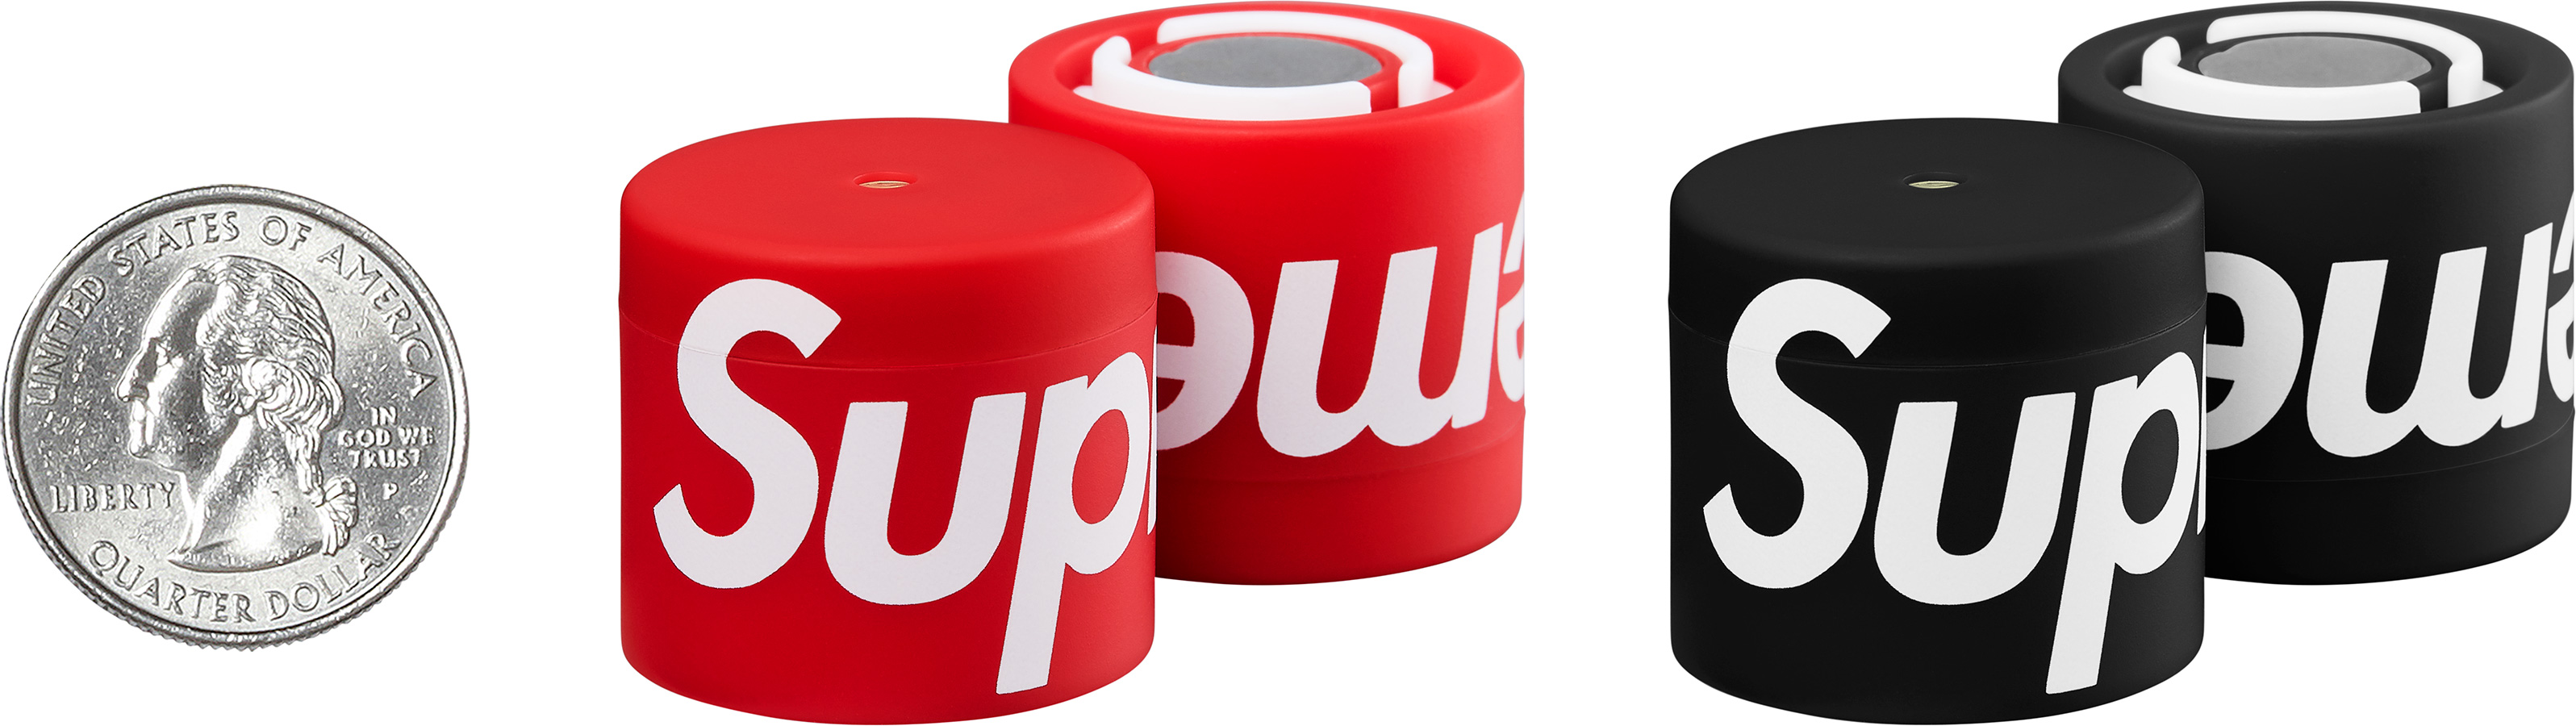 supreme-18aw-fall-winter-supreme-lucetta-magnetic-bike-lights